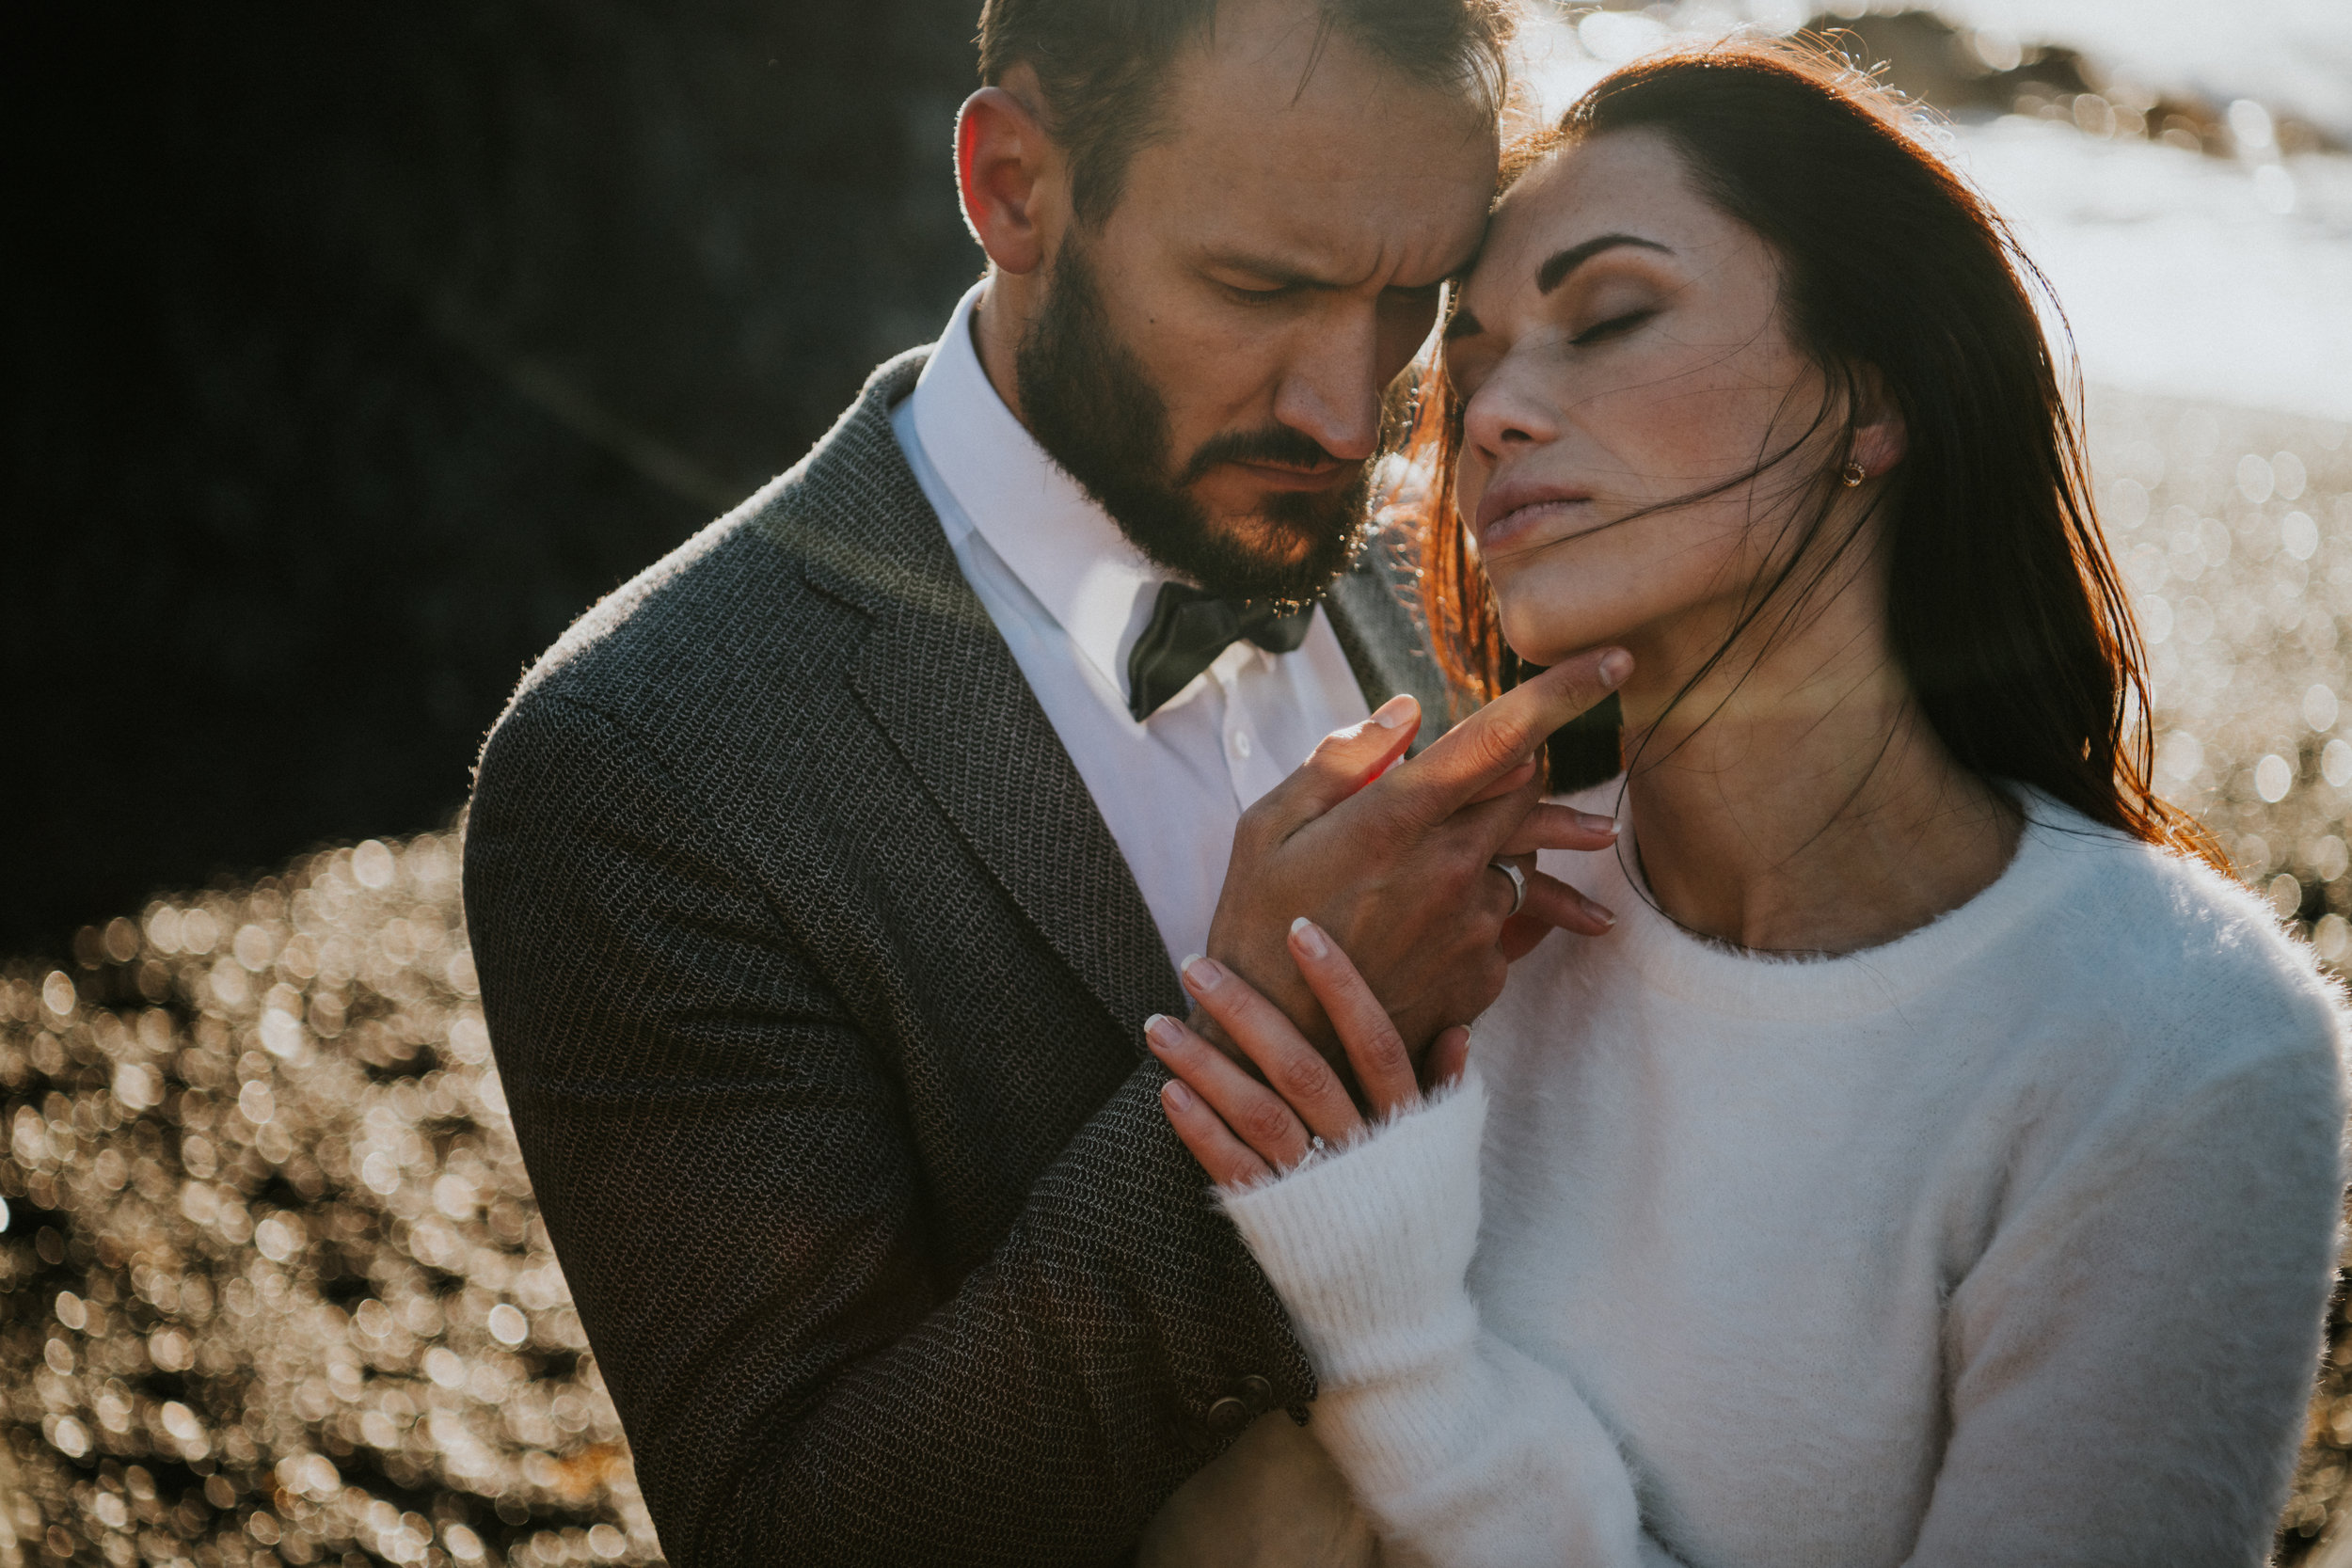 Natalie-Vitaly-Iceland-Elopement-Photographer-Videographer-35